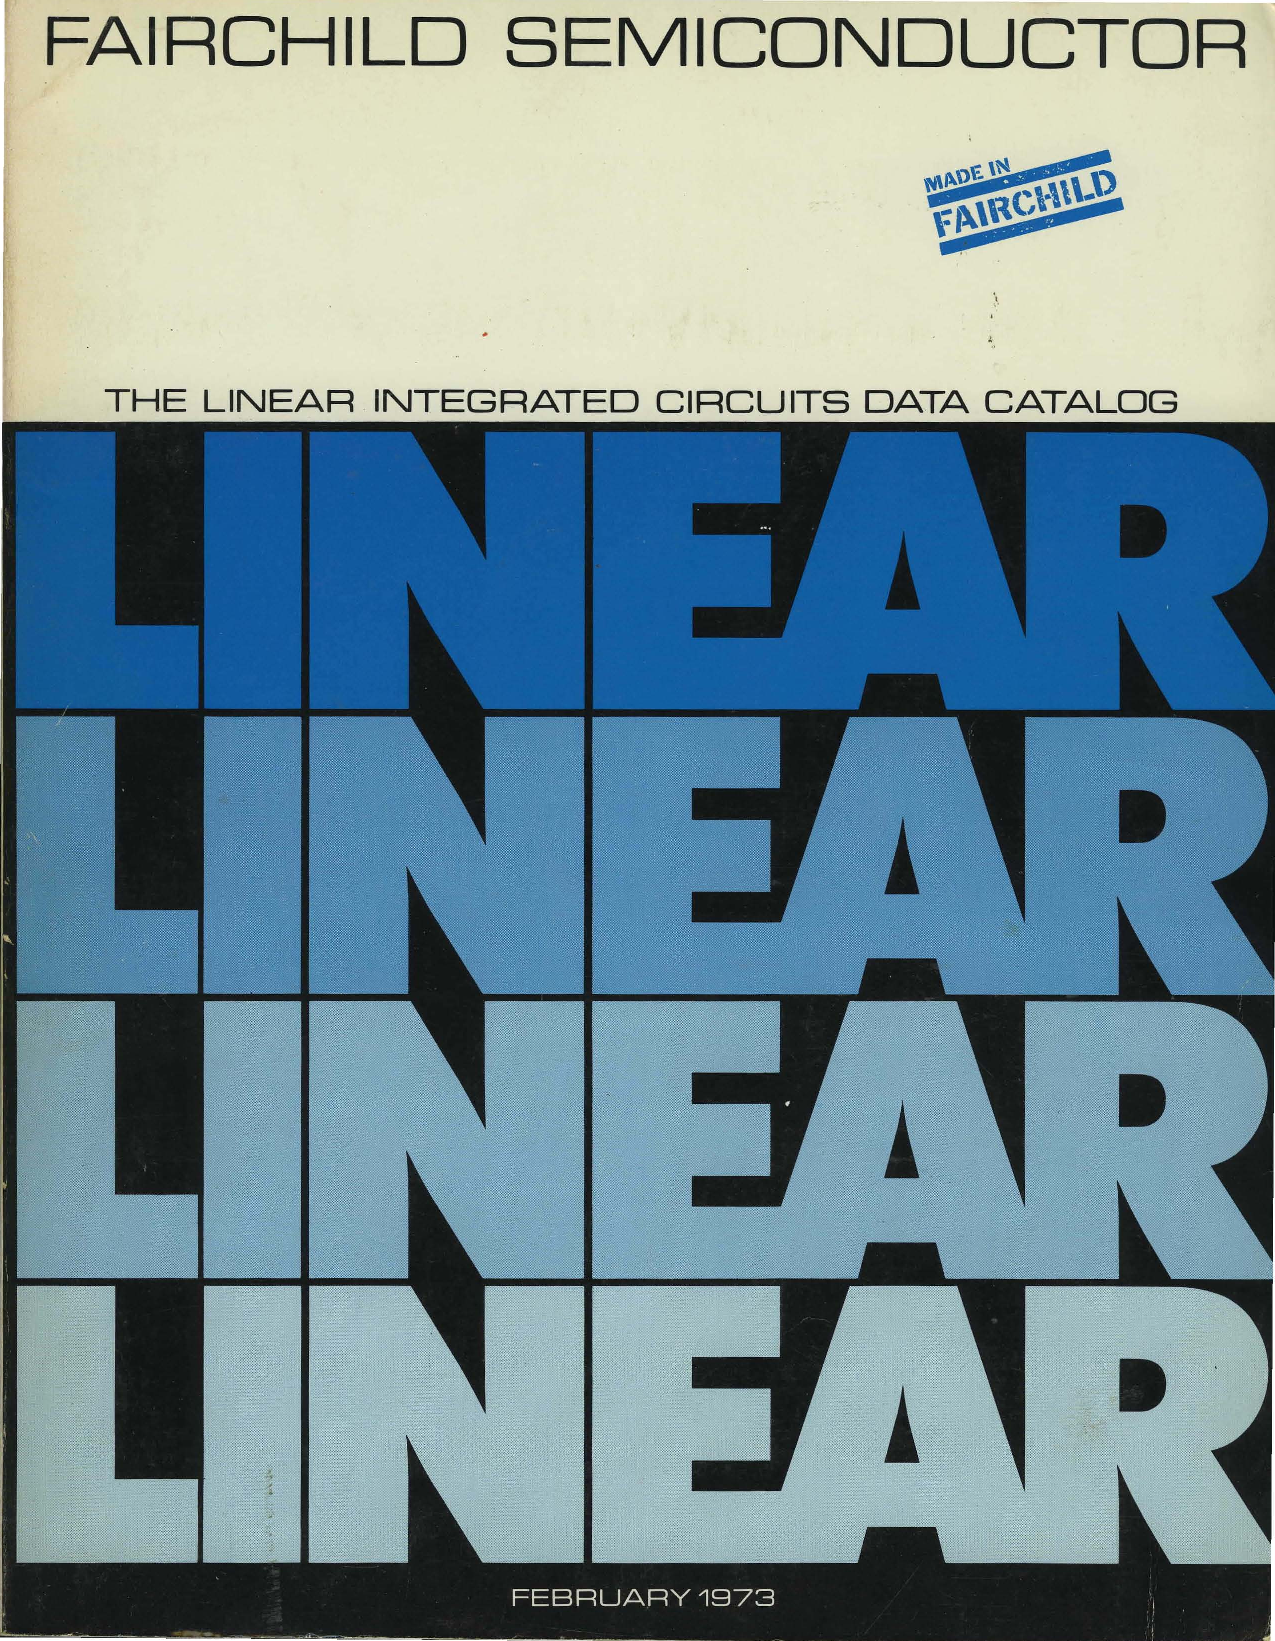 1973 Fairchild Linear Integrated Circuits Data Catalog Super Zener Variable Diode Circuit Using 741 Op Amp